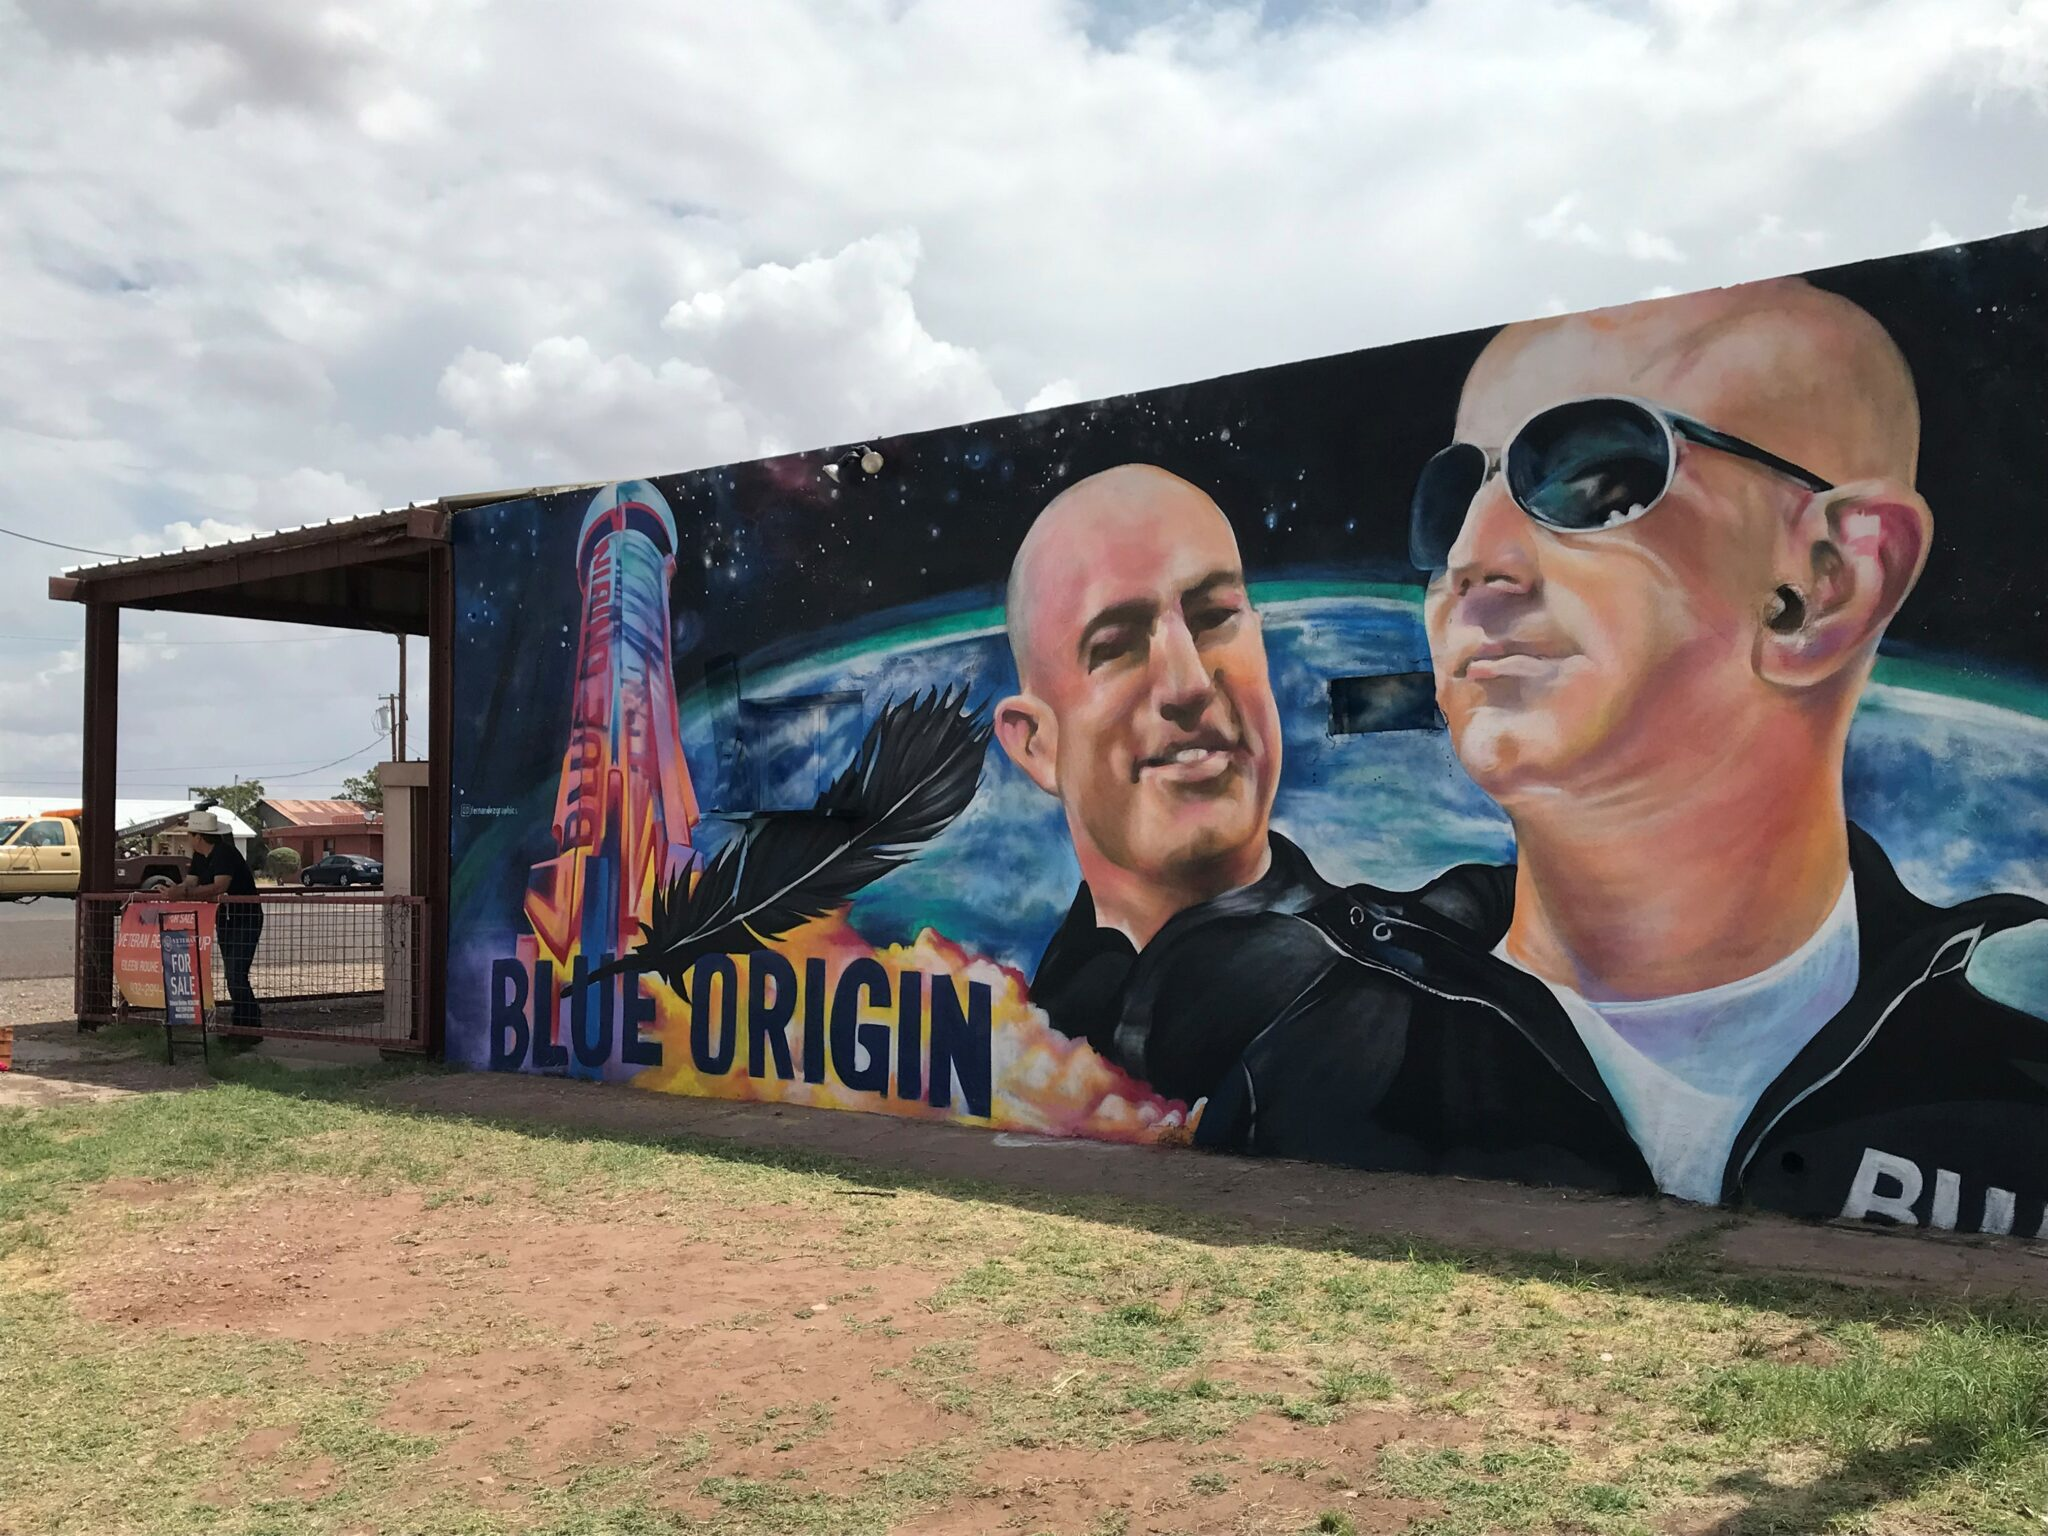 Blue Origin's space shots give tiny Texas town a boost that's bigger than expected